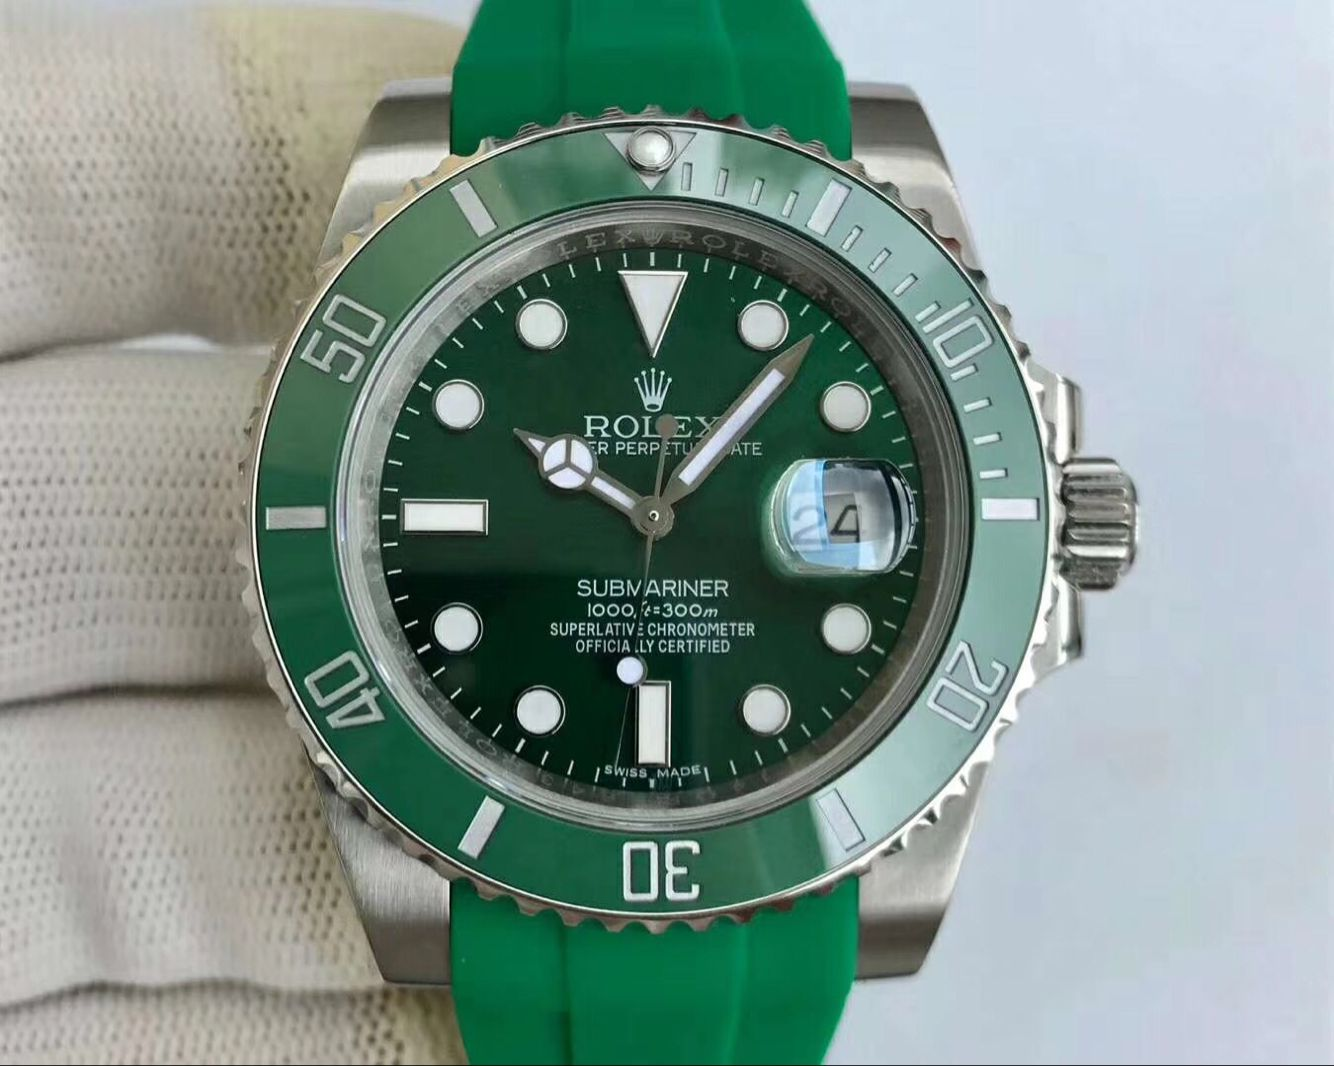 Copy Rolex Green Dial Green Bezel Green Rubber Band Swiss Watch